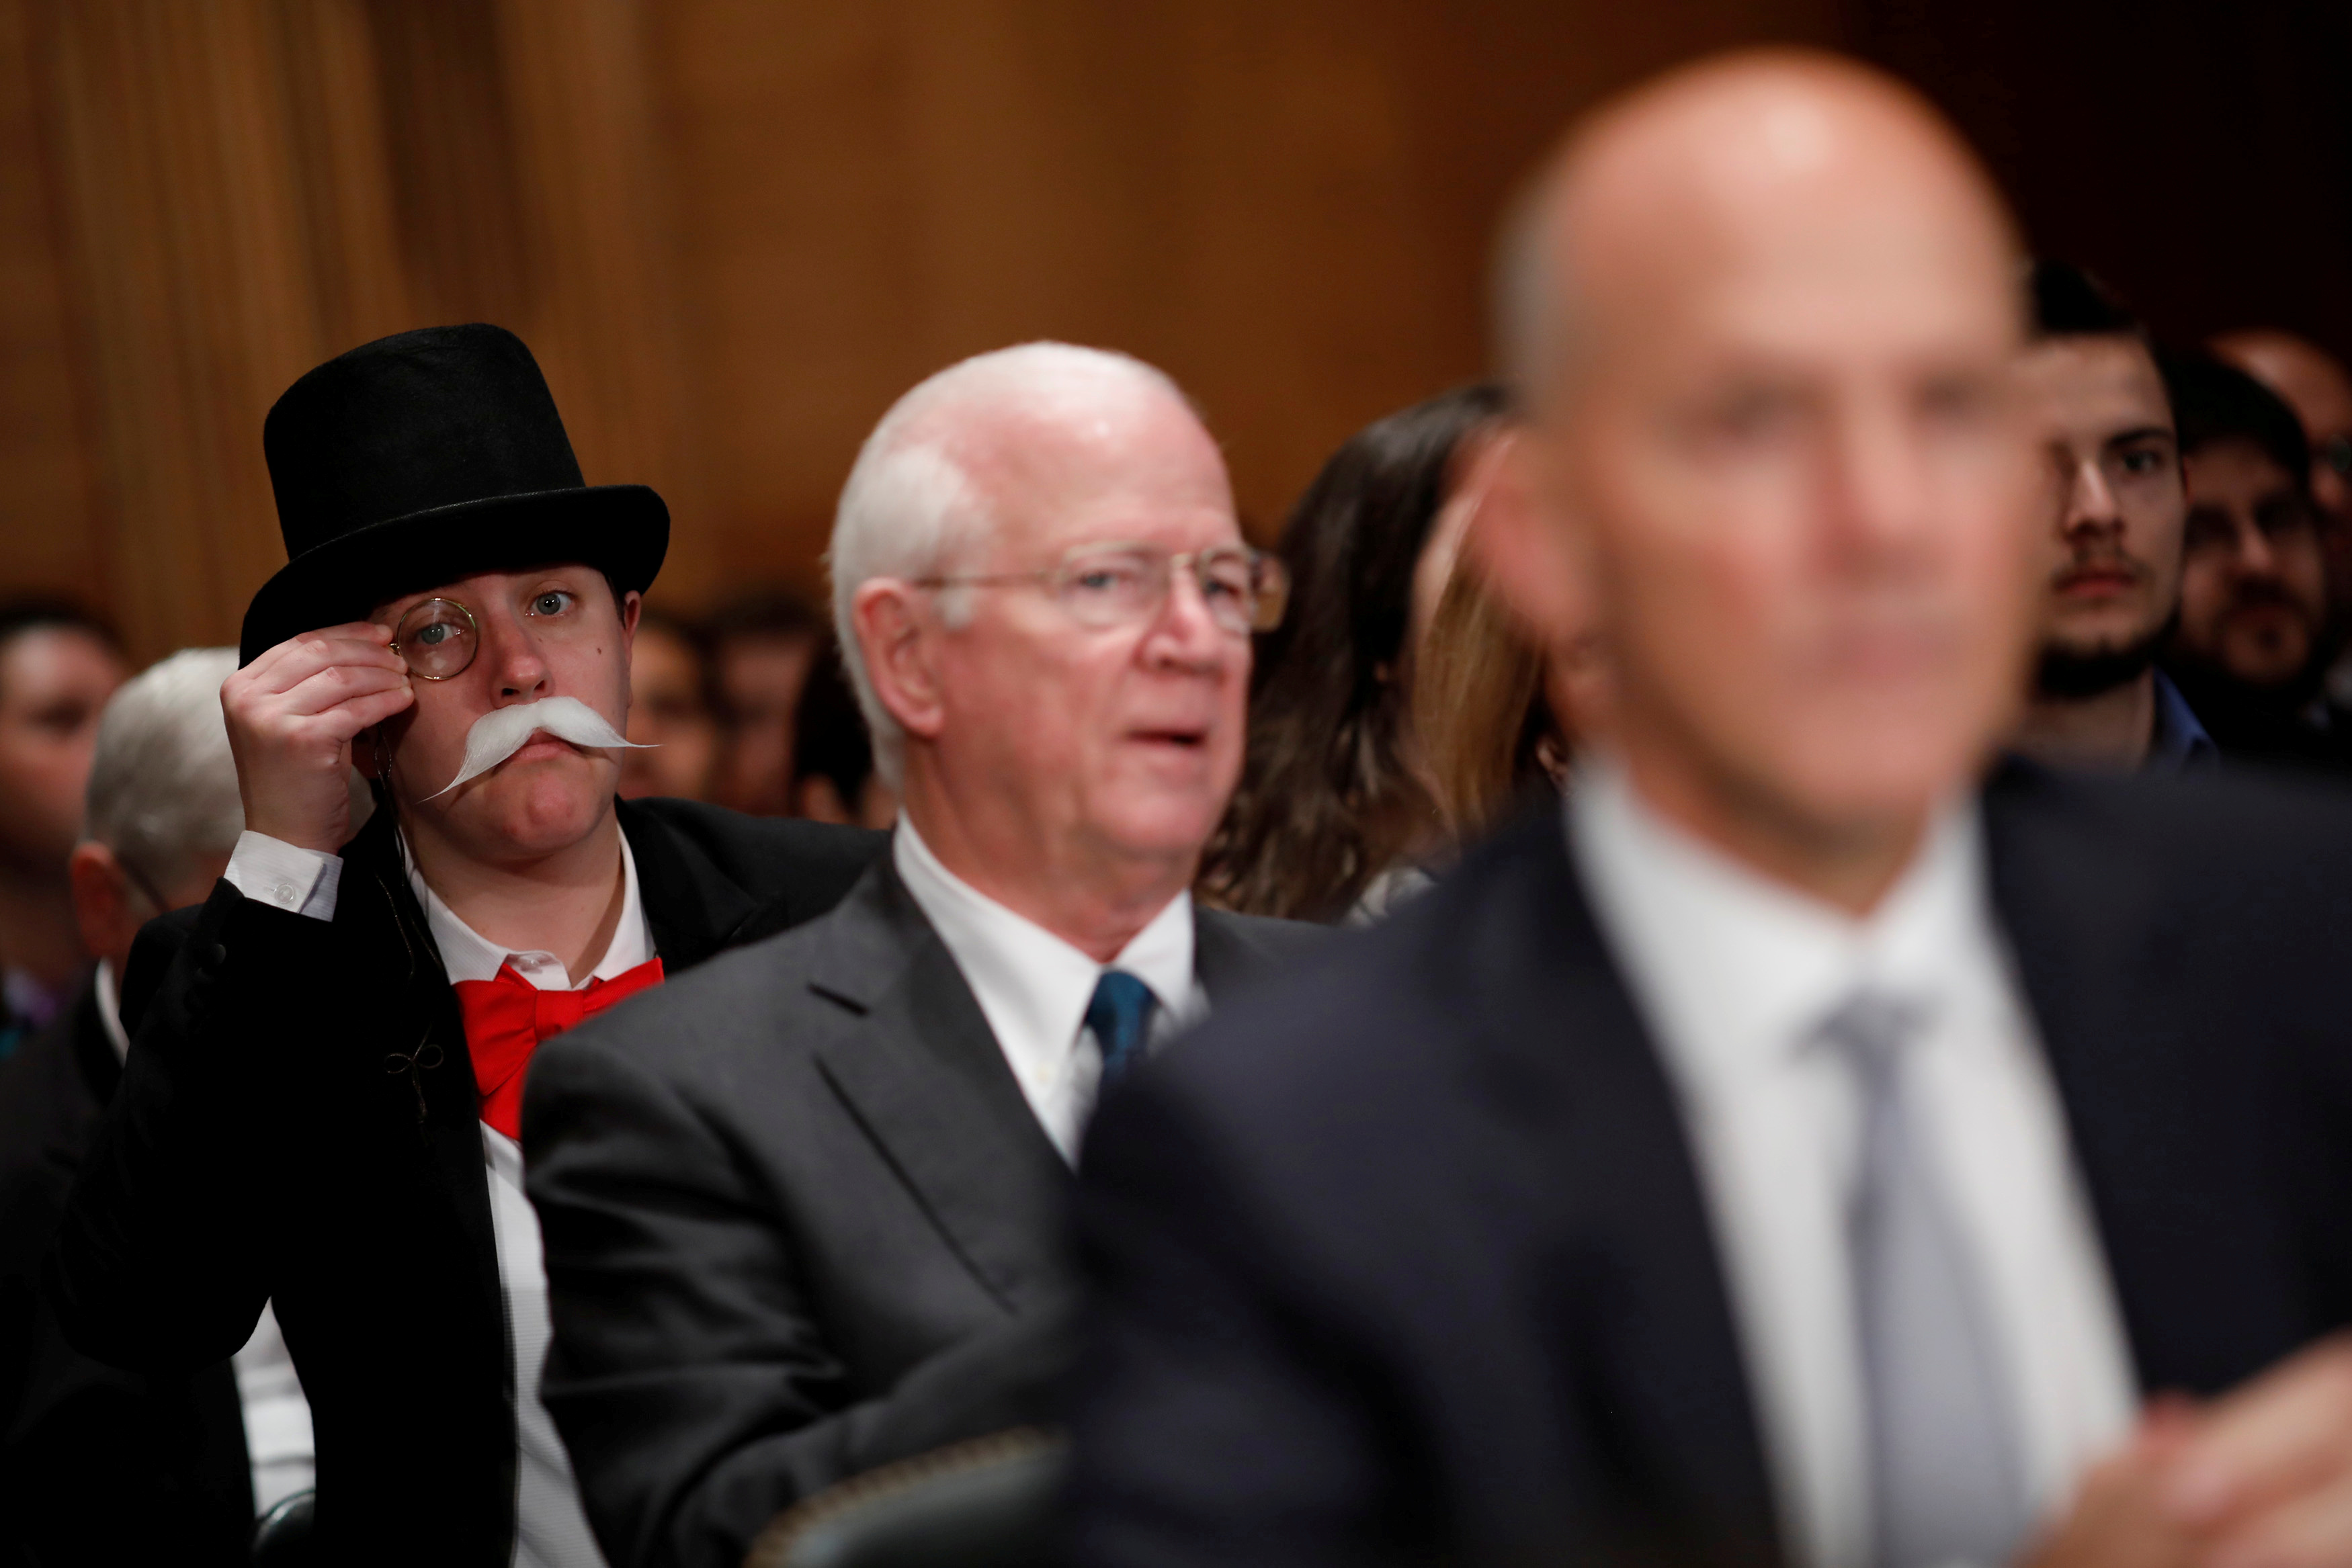 A hearing attendee dressed as the Monopoly Man looks on as Richard Smith, former chairman and CEO of Equifax, testifies before the U.S. Senate Banking Committee in Washington, D.C. Photo by Aaron P. Bernstein/Reuters